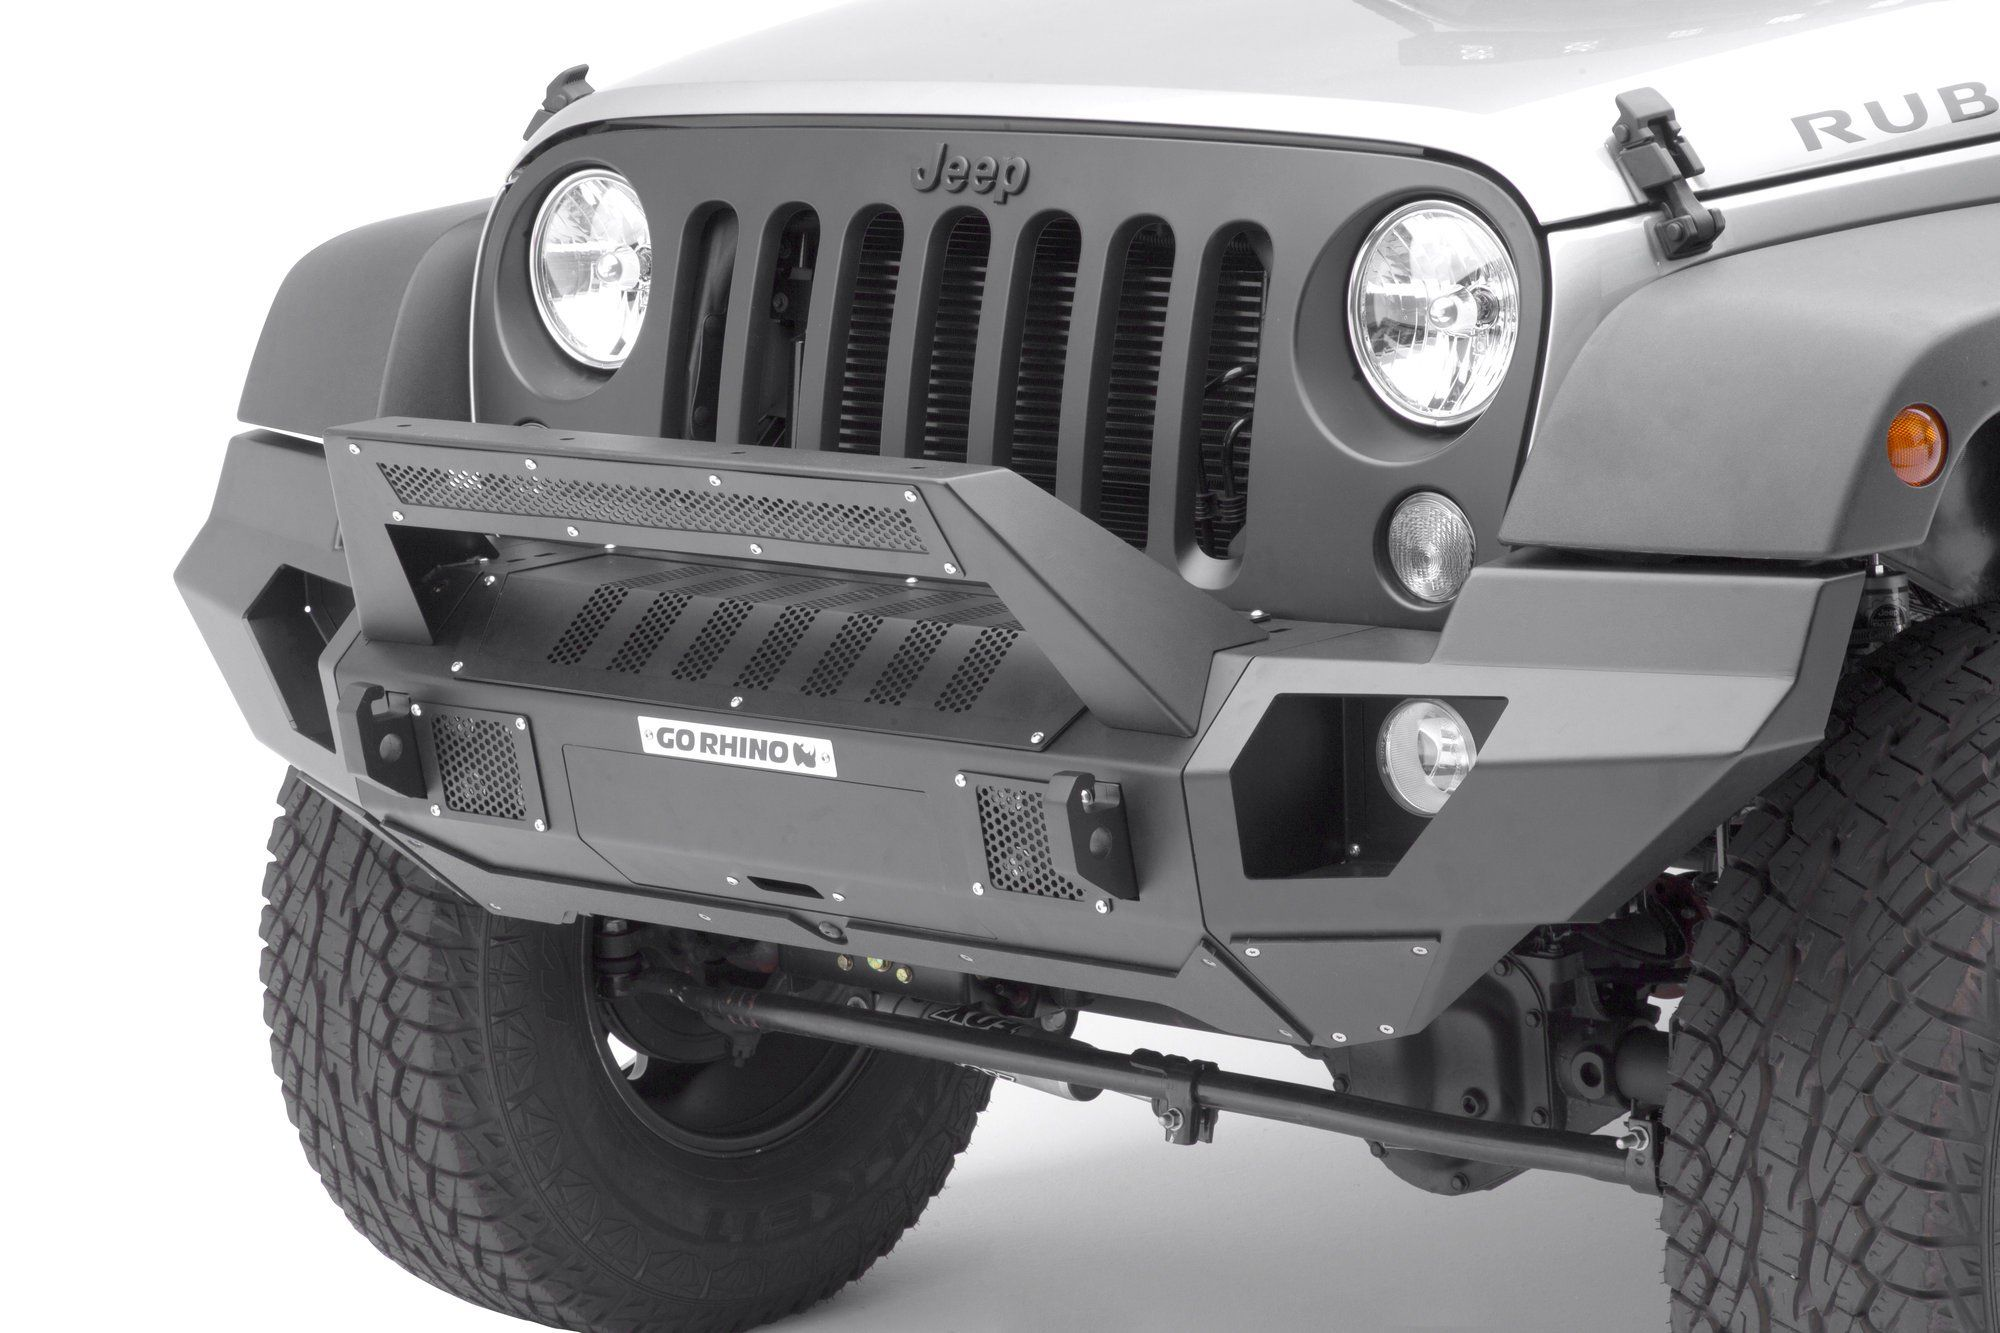 The Go Rhino Brj40 Front Bumper Is The Ultimate Modular Bumper For The Jeep Wrangler Jk Completing The Jeep Wrangler Bumpers Jeep Bumpers Jeep Front Bumpers